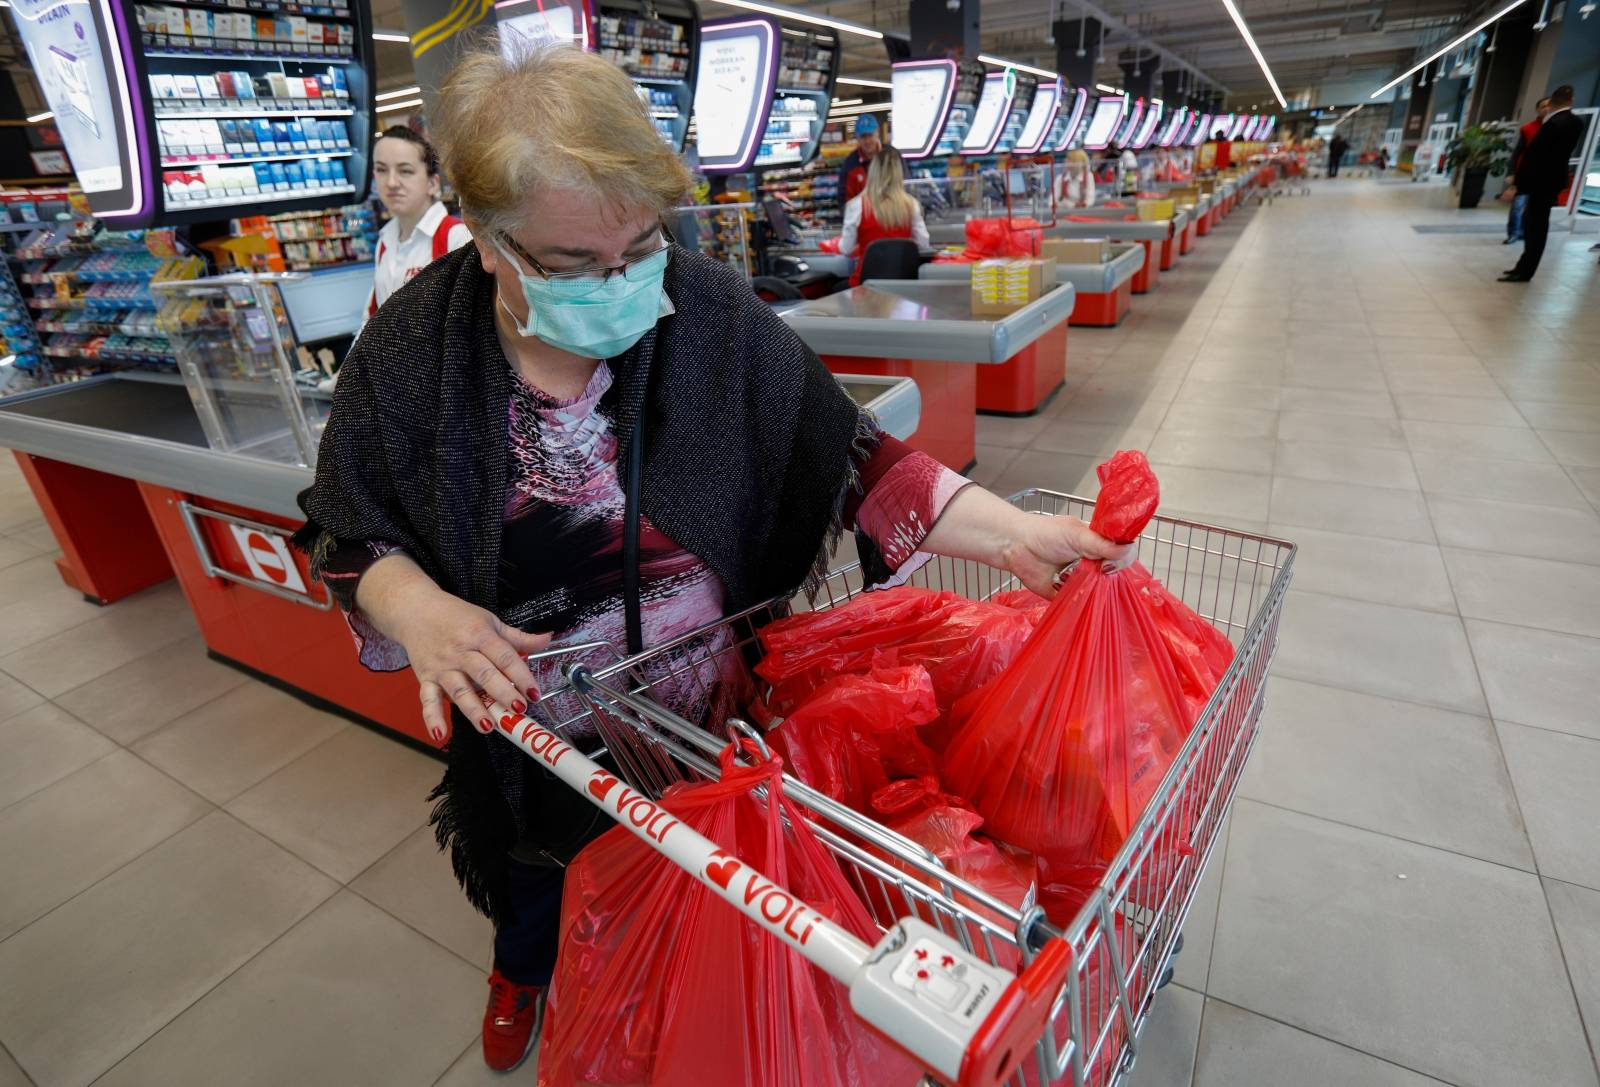 A woman wears a mask as she packs her groceries after the government limited the number of customers in supermarkets to 50 at a time due to coronavirus (COVID-19) threat in Podgorica